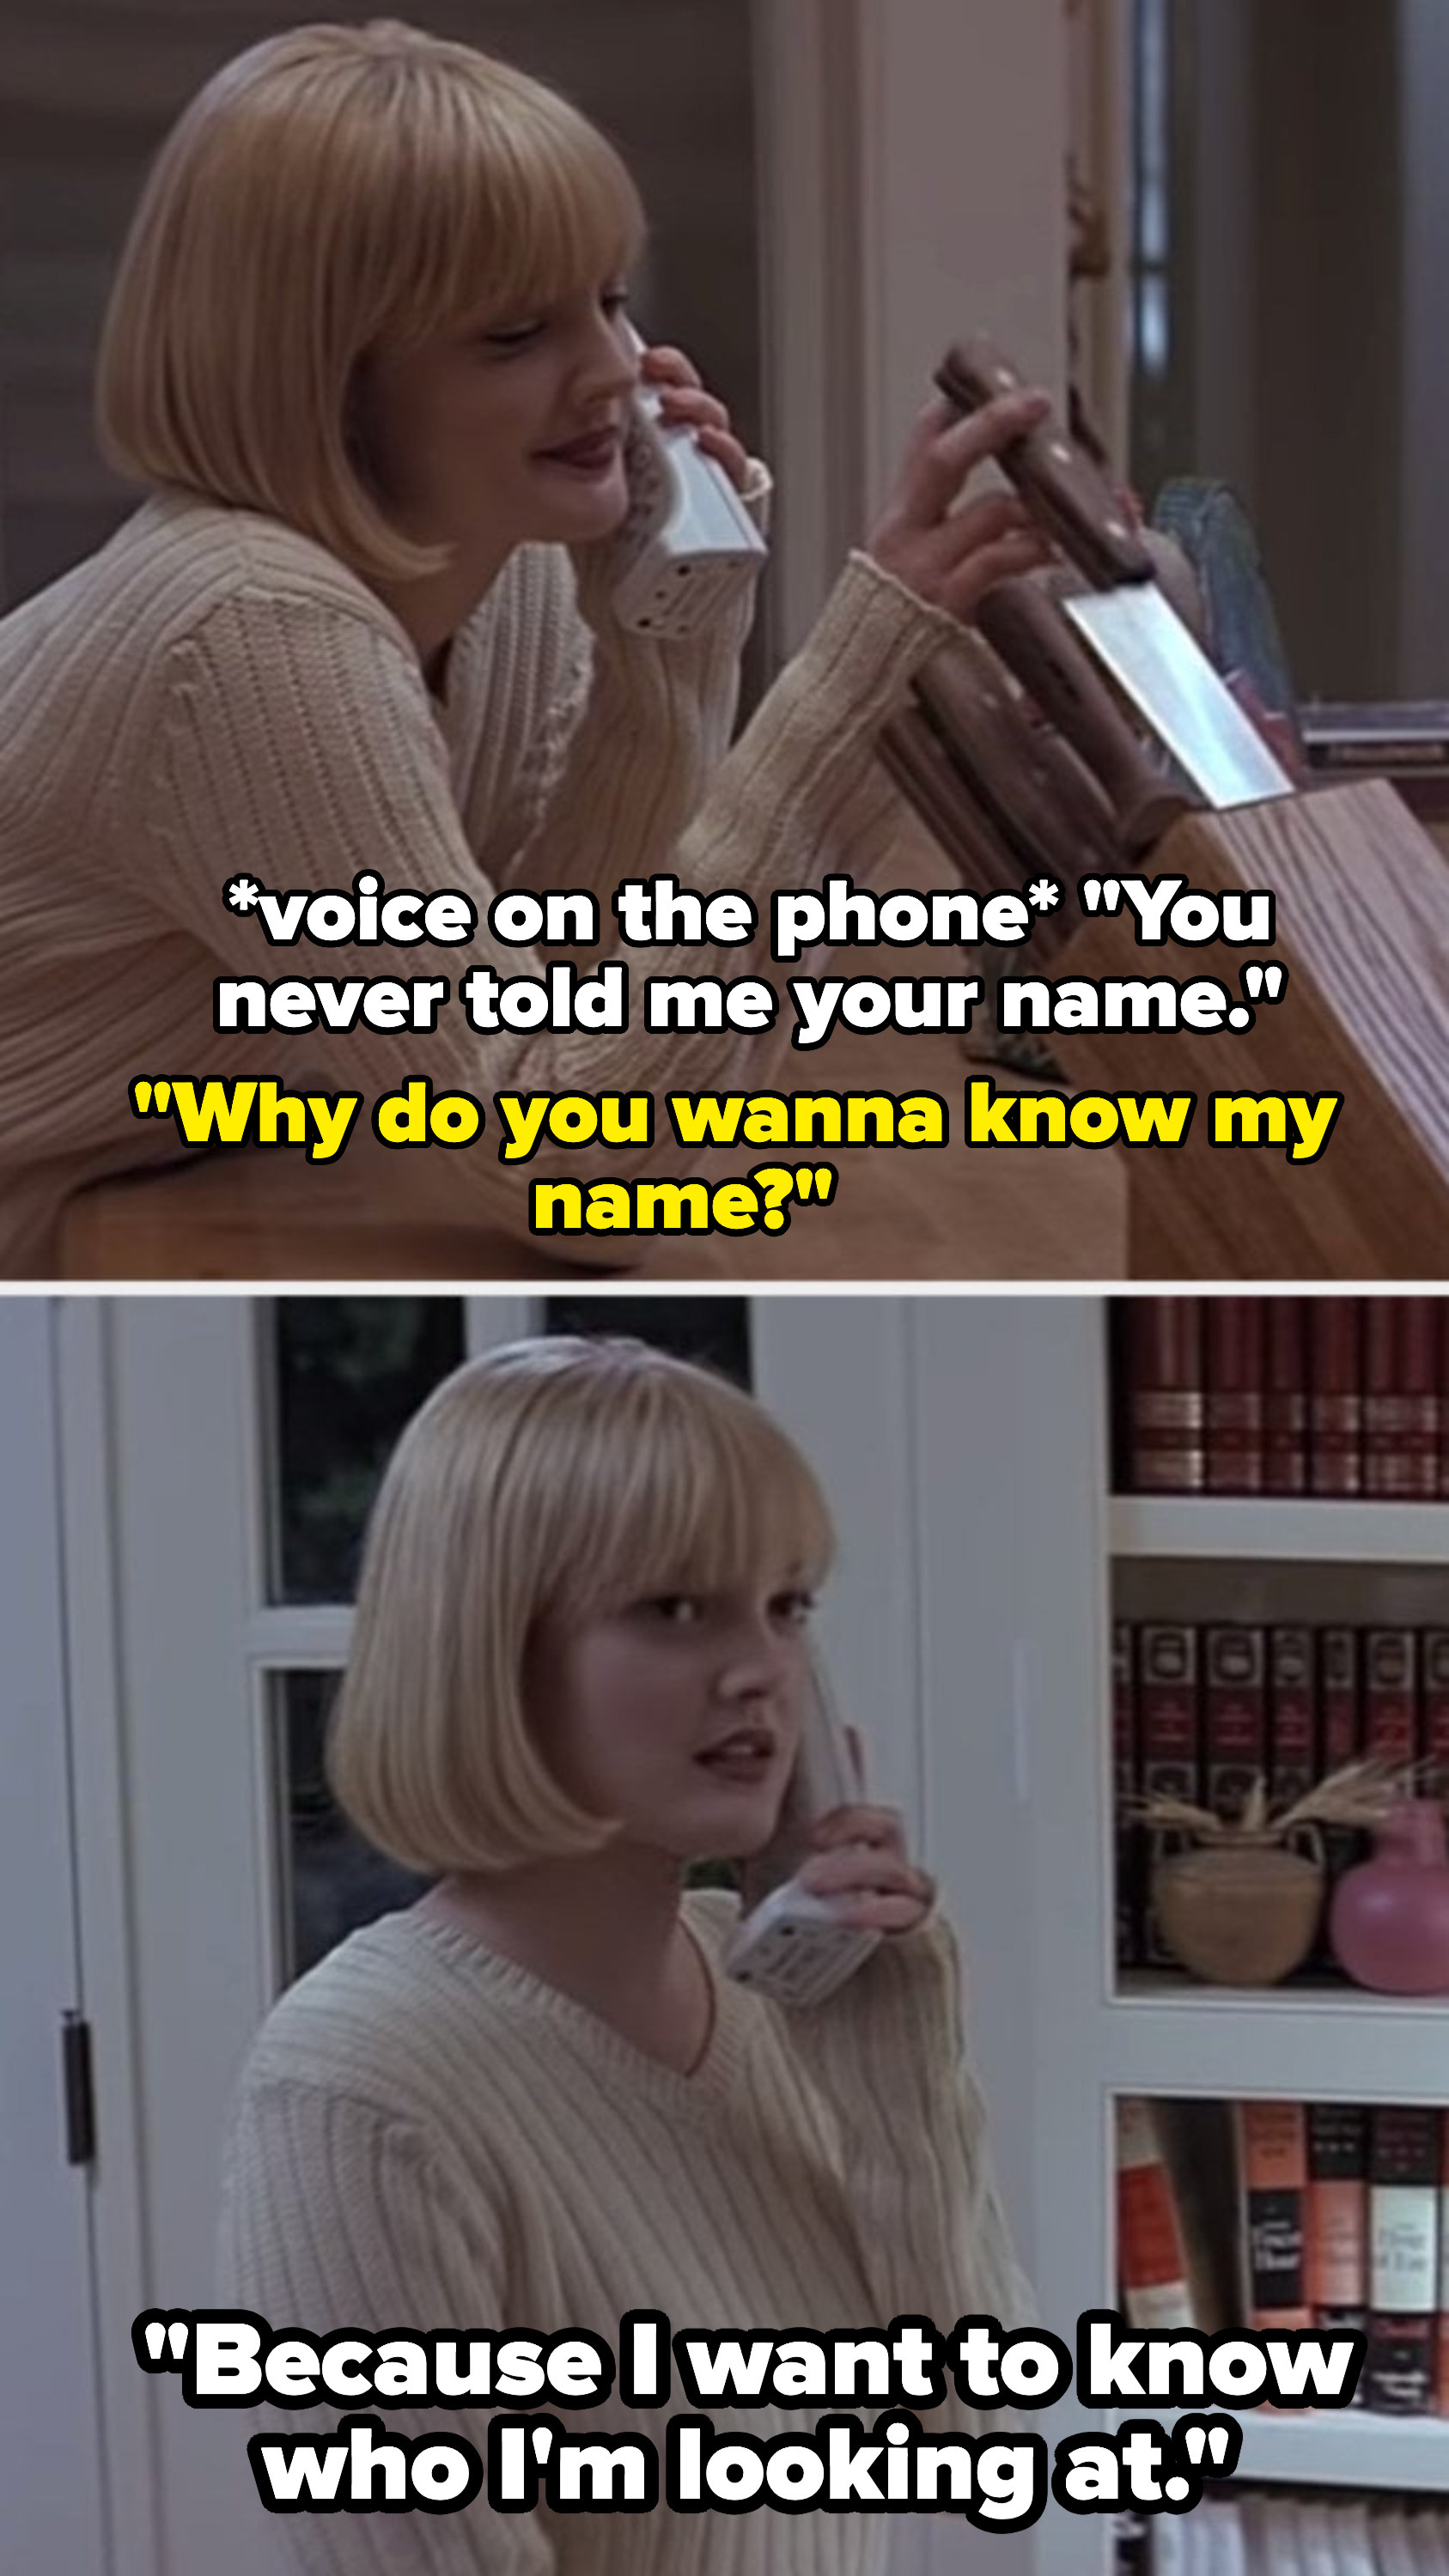 Drew Barrymore talking to the Scream serial killer on the phone